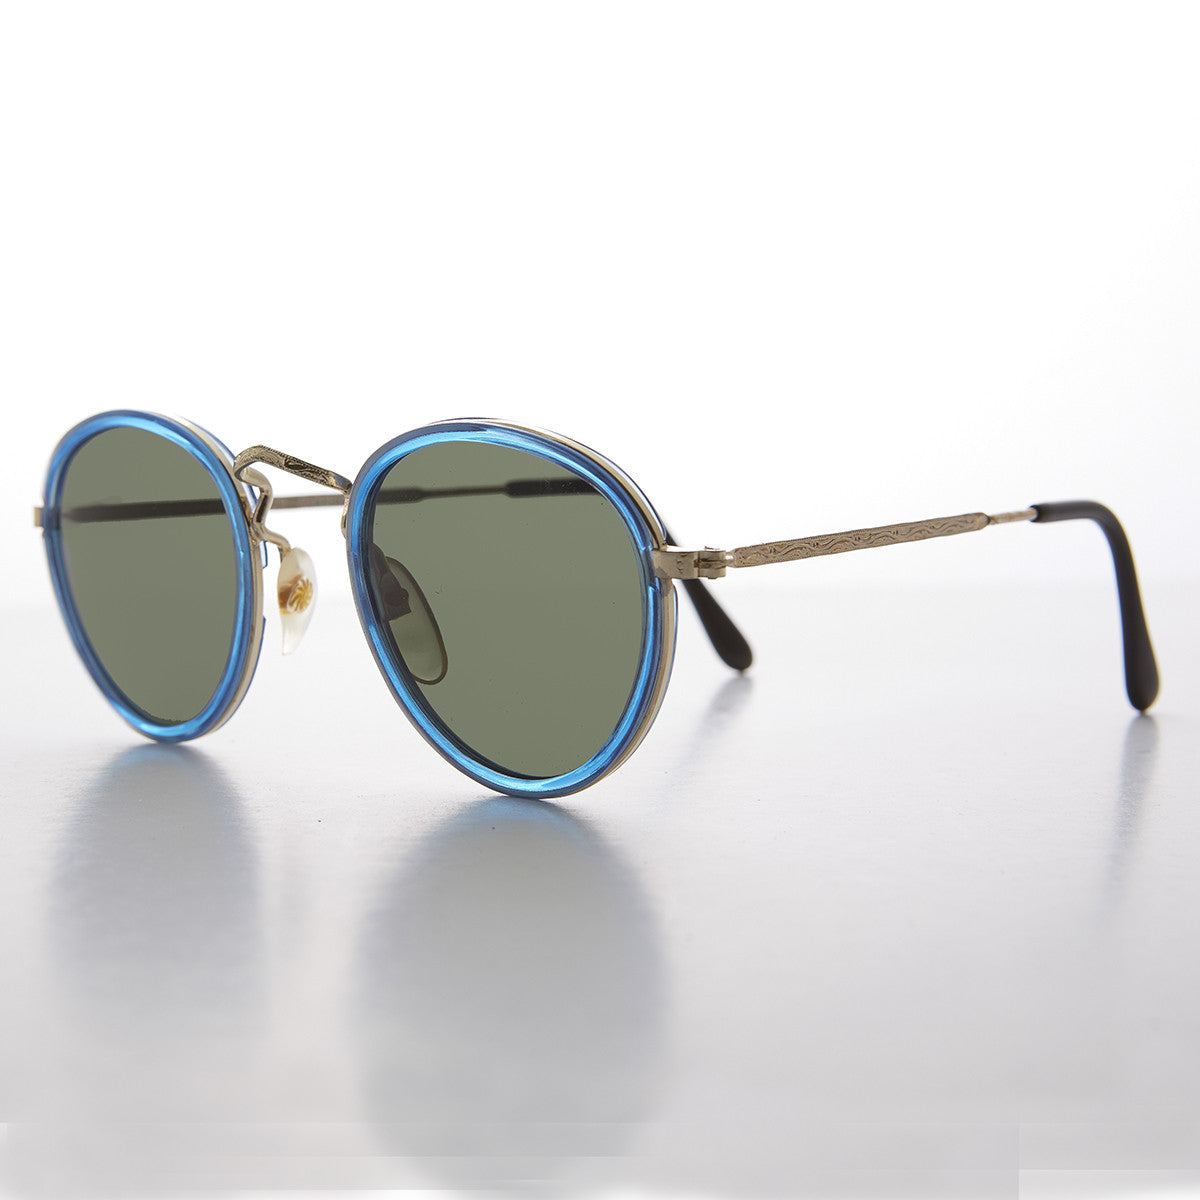 Colorful Round Preppy Vintage Sunglasses with Gold Frames - Maddie